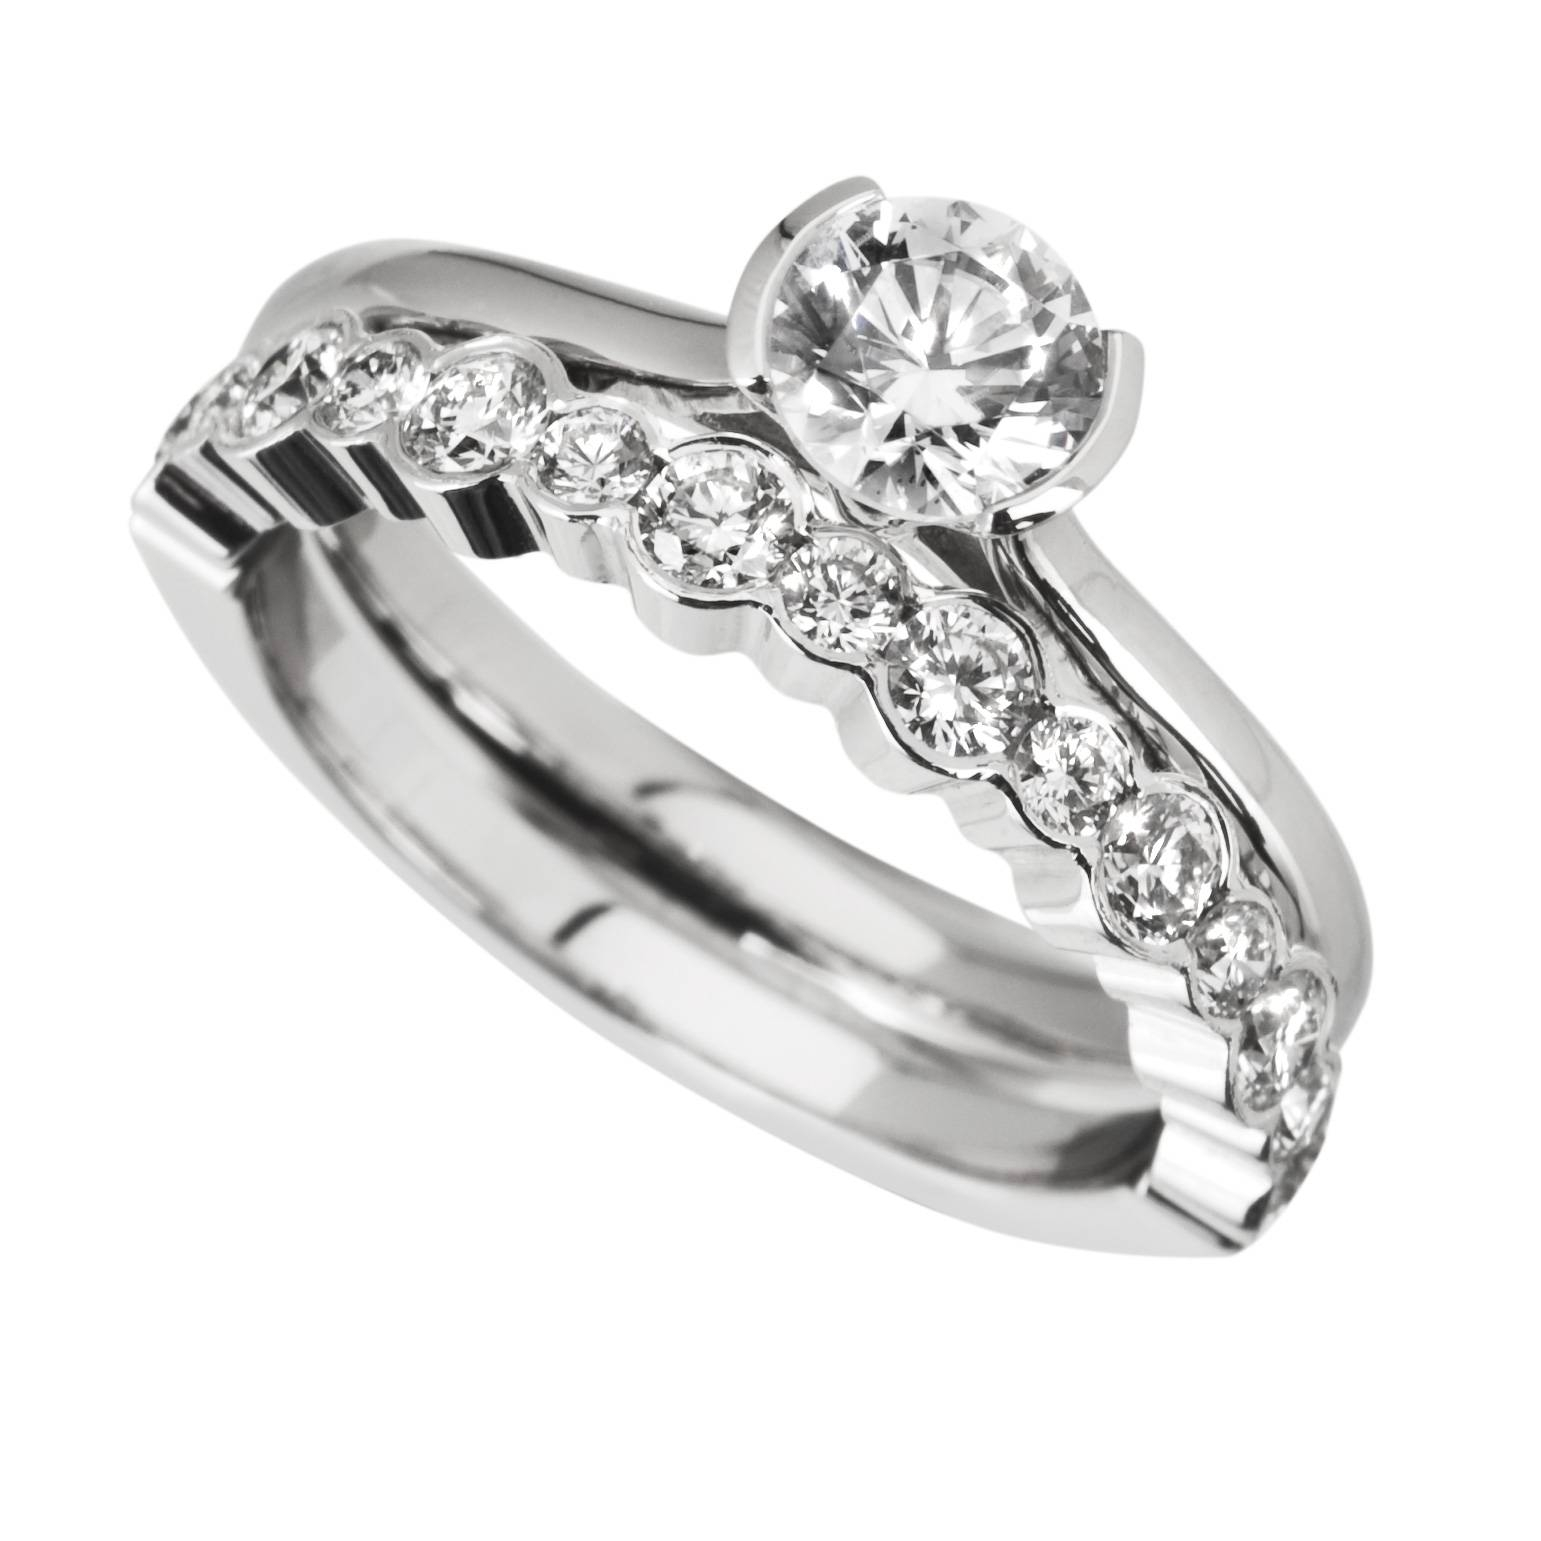 Wedding Rings : Wedding Rings With Engagement Ring Set Engagement With Regard To Engagement Ring And Wedding Band Sets (Gallery 2 of 15)